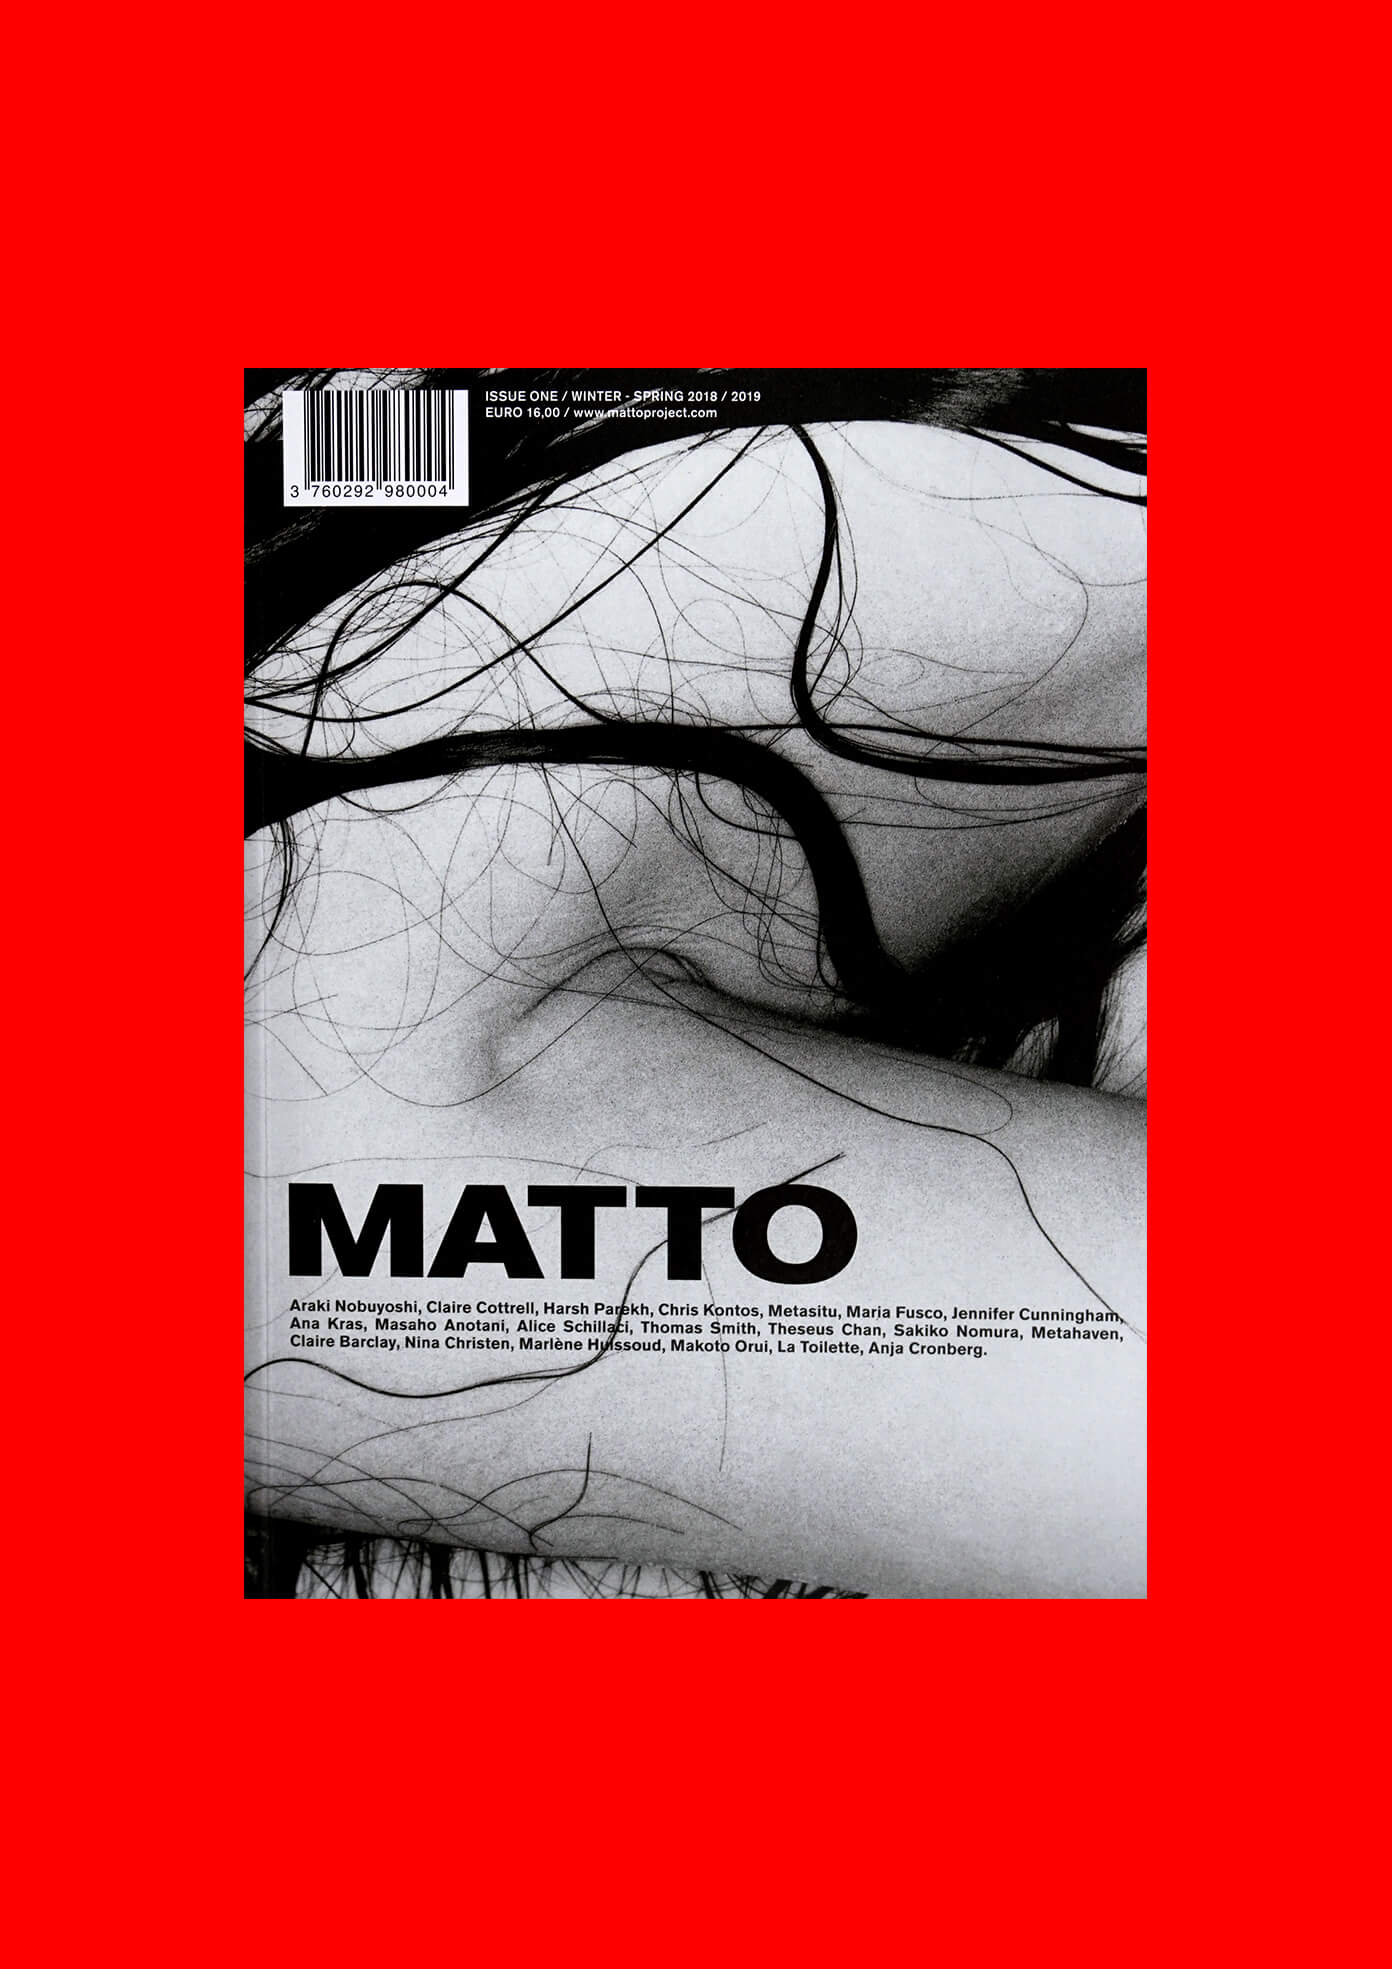 MATTO magazine issue one